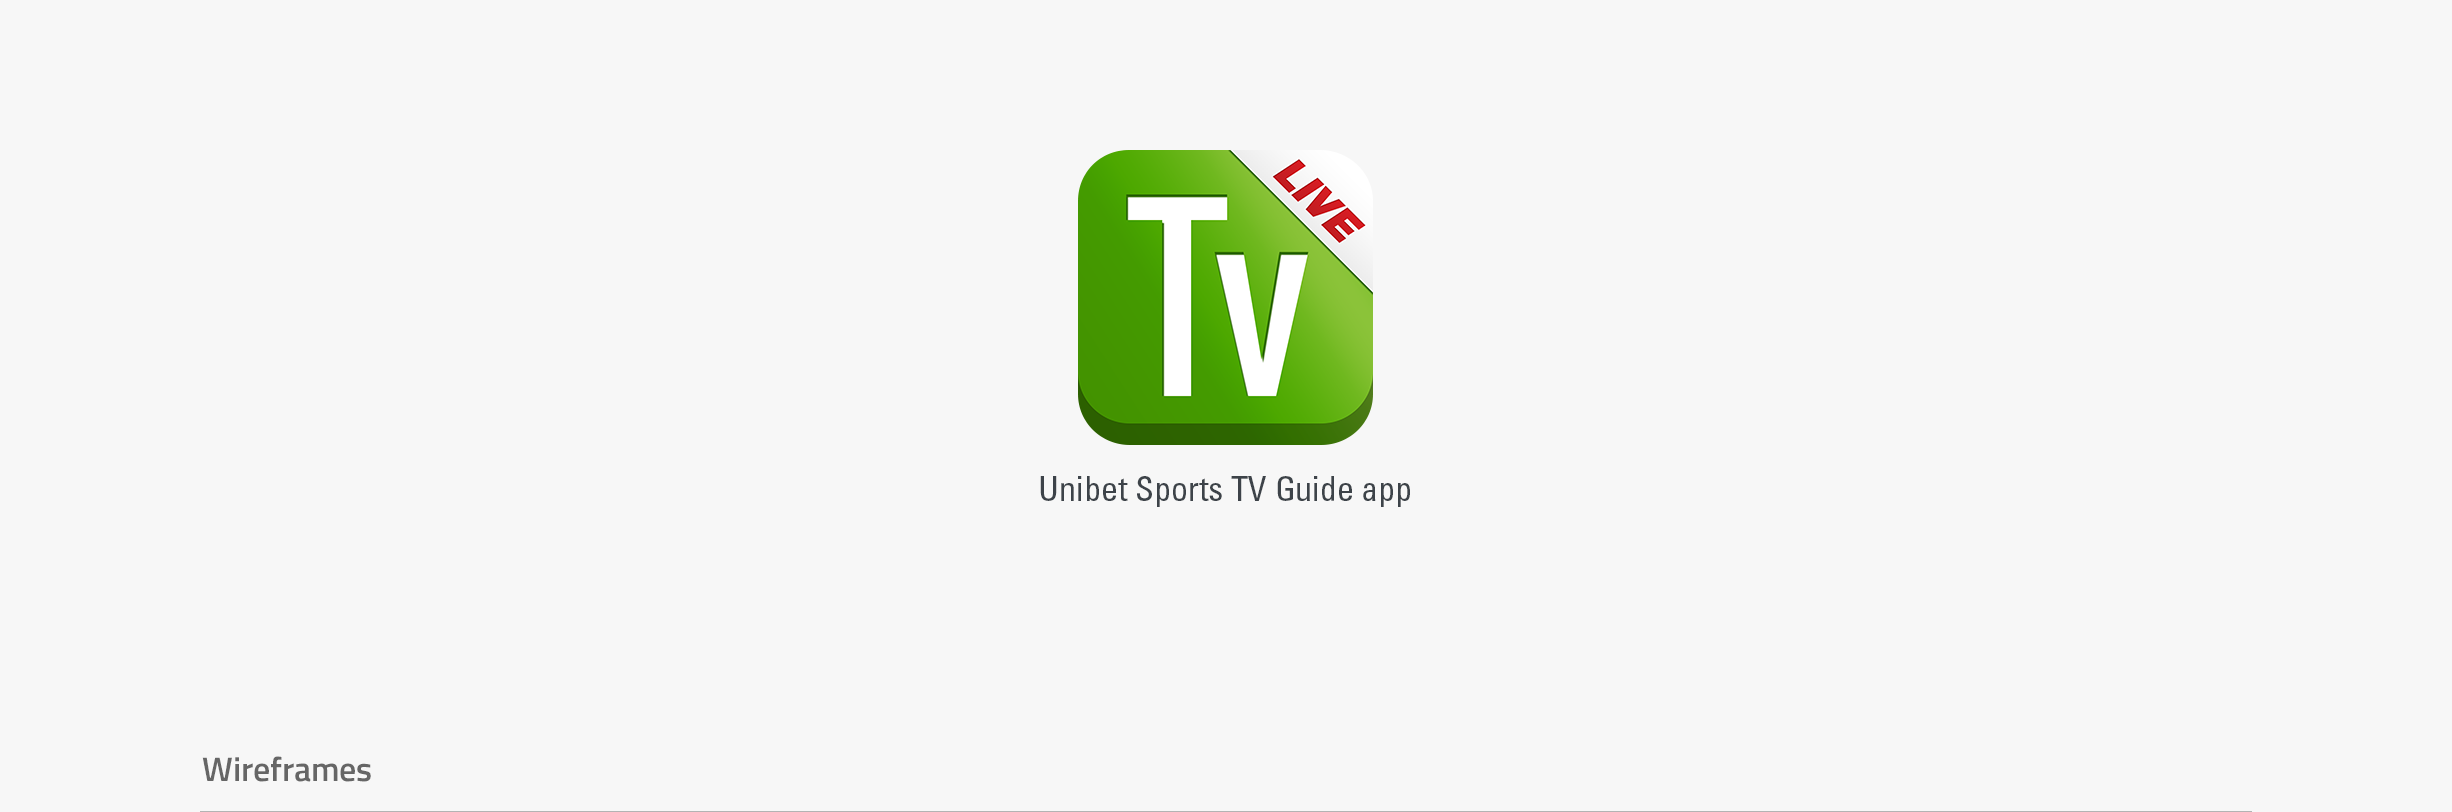 Unibet Sports TV guide app - app icon